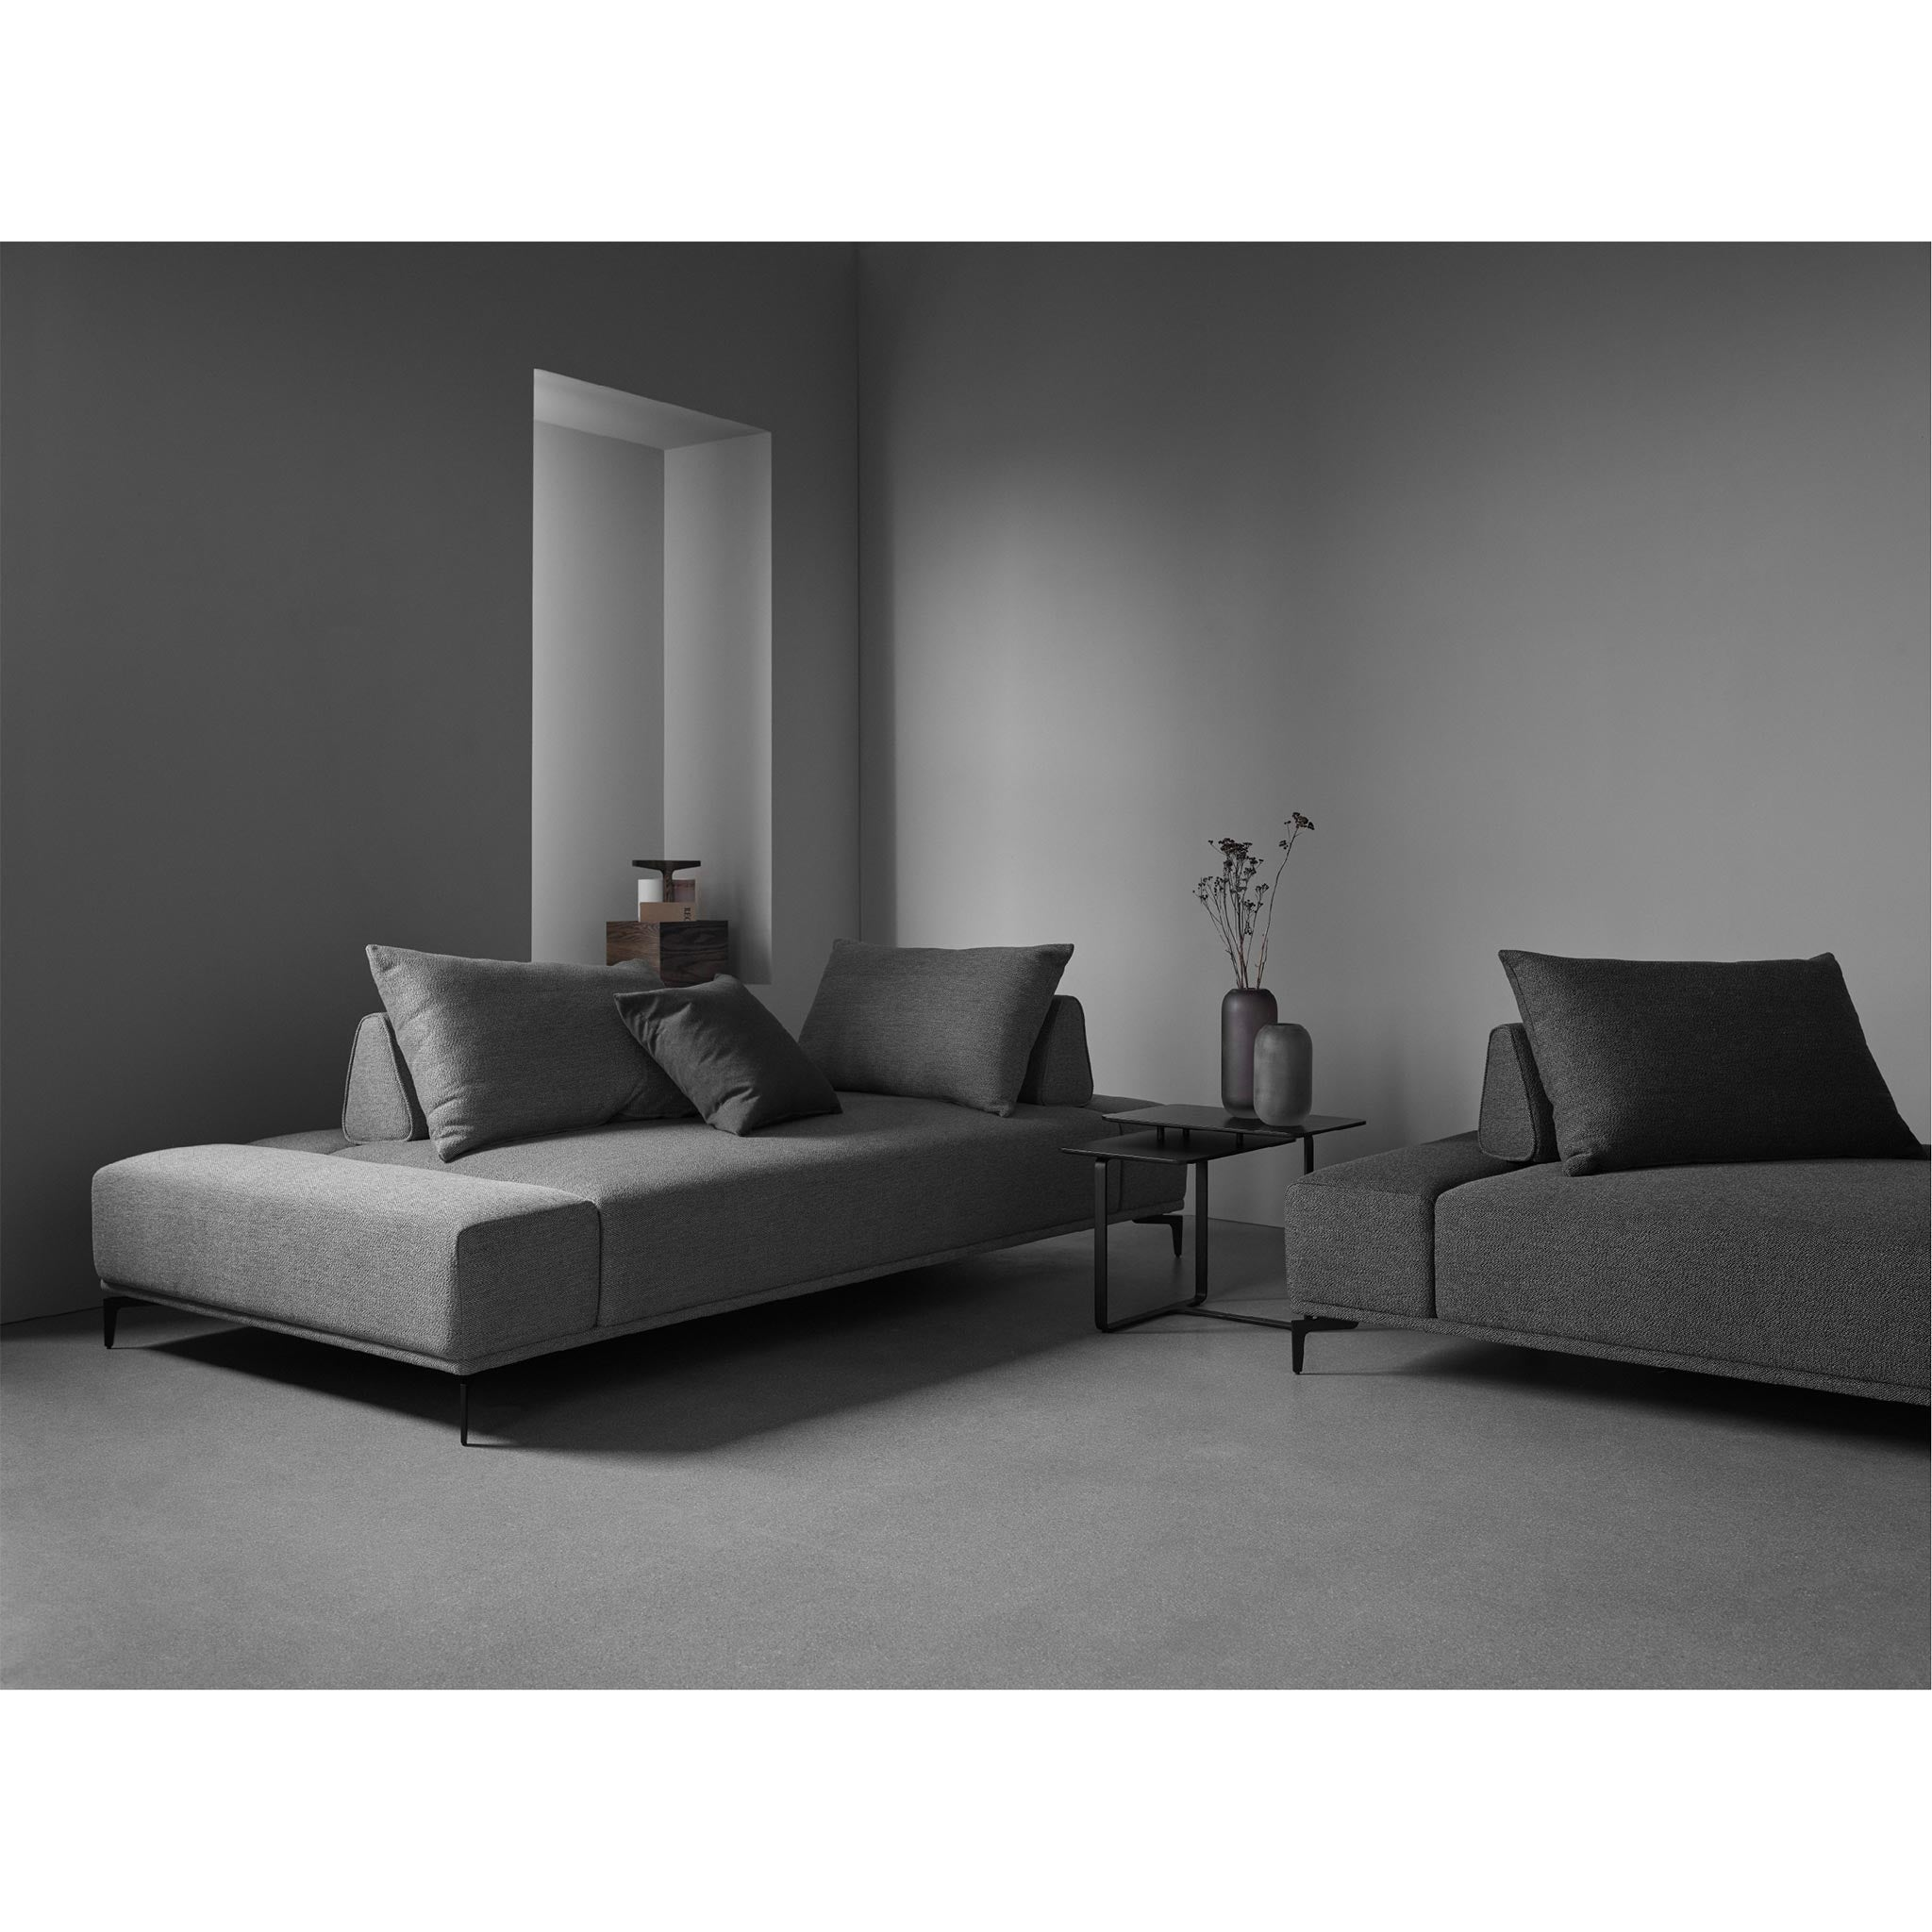 Wendelbo Sofa | Define